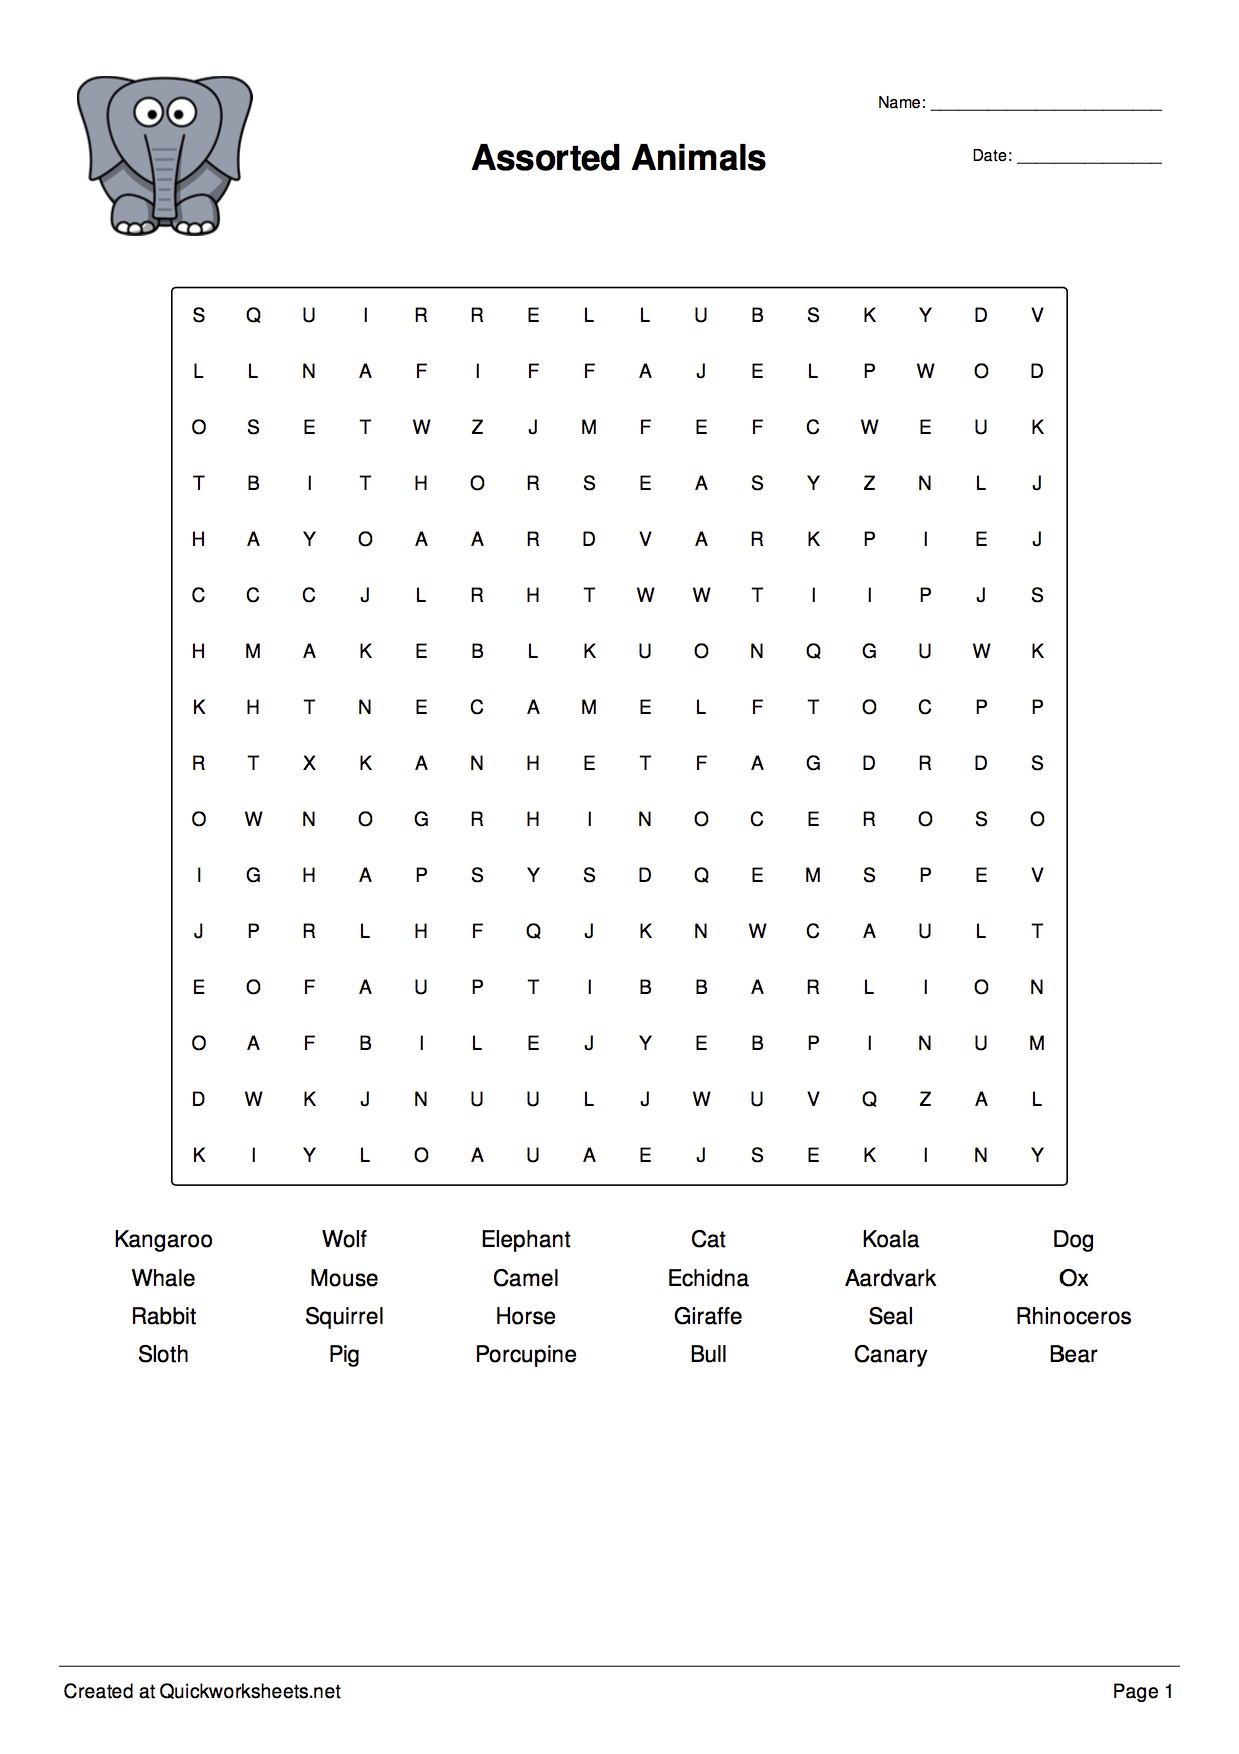 Blank Word Matching Worksheet : Word scramble wordsearch crossword matching pairs and